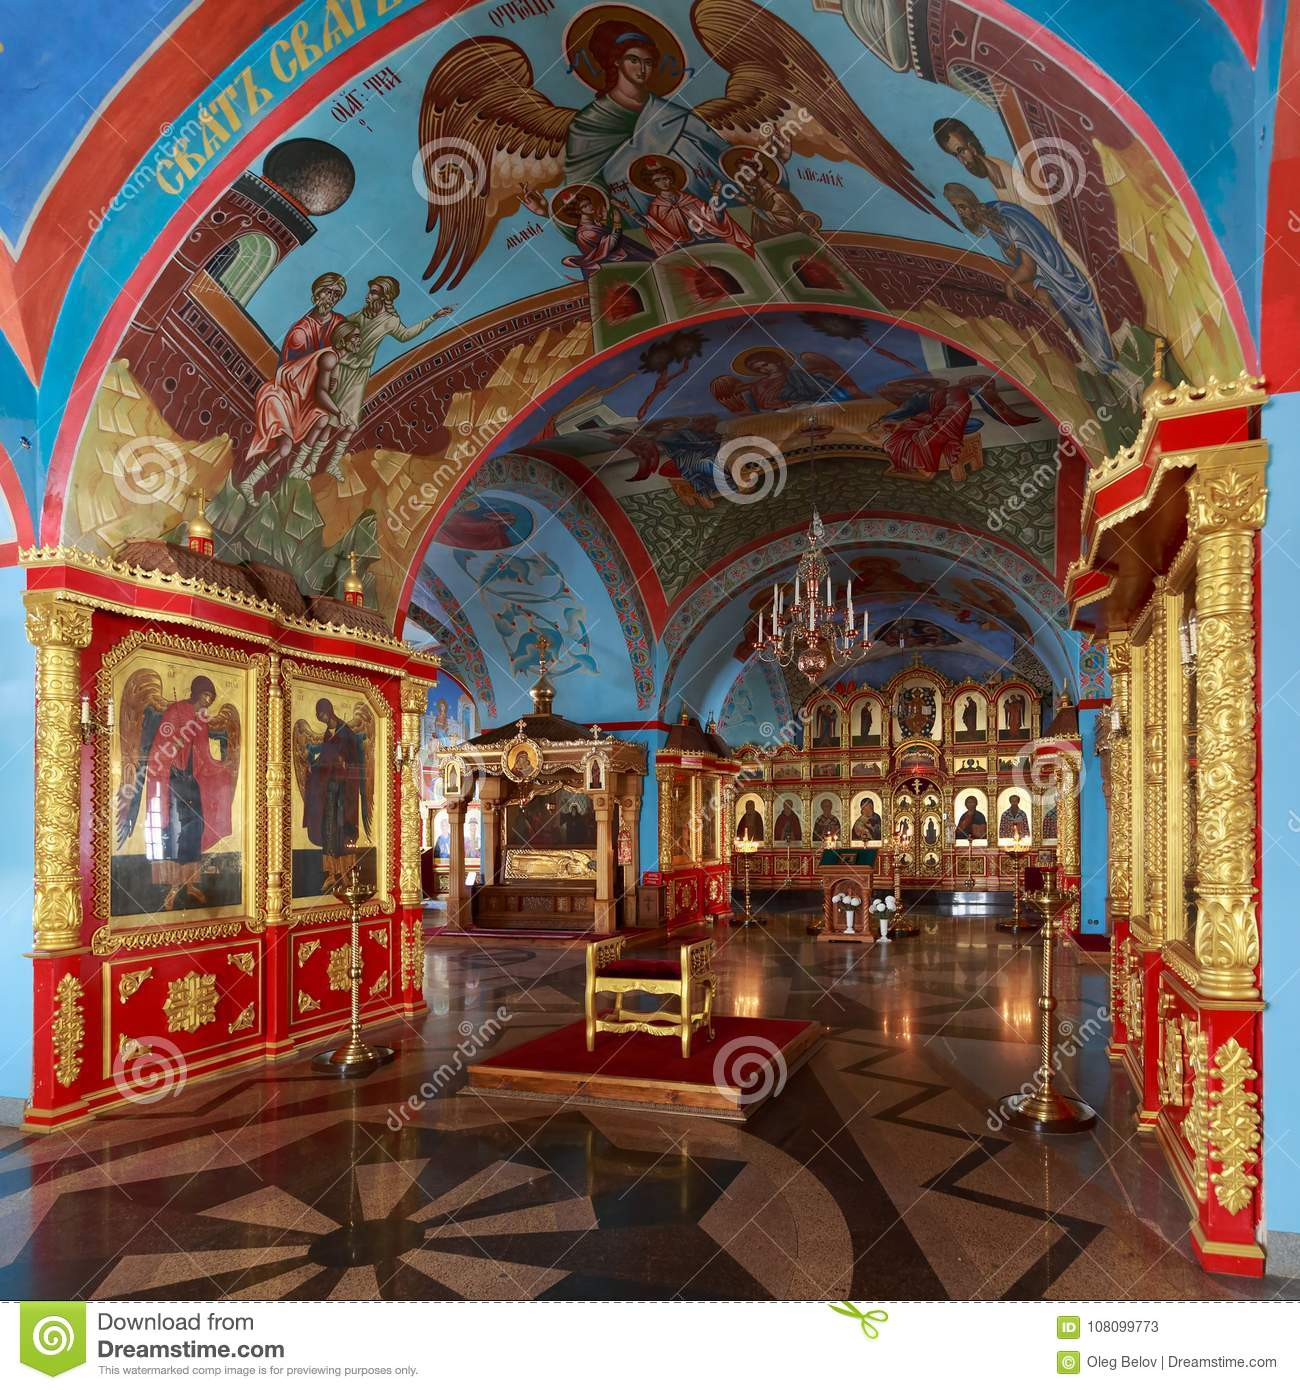 Astrakhan, Assumption Cathedral on the territory of the Astrakhan Kremlin: history, description, address 35